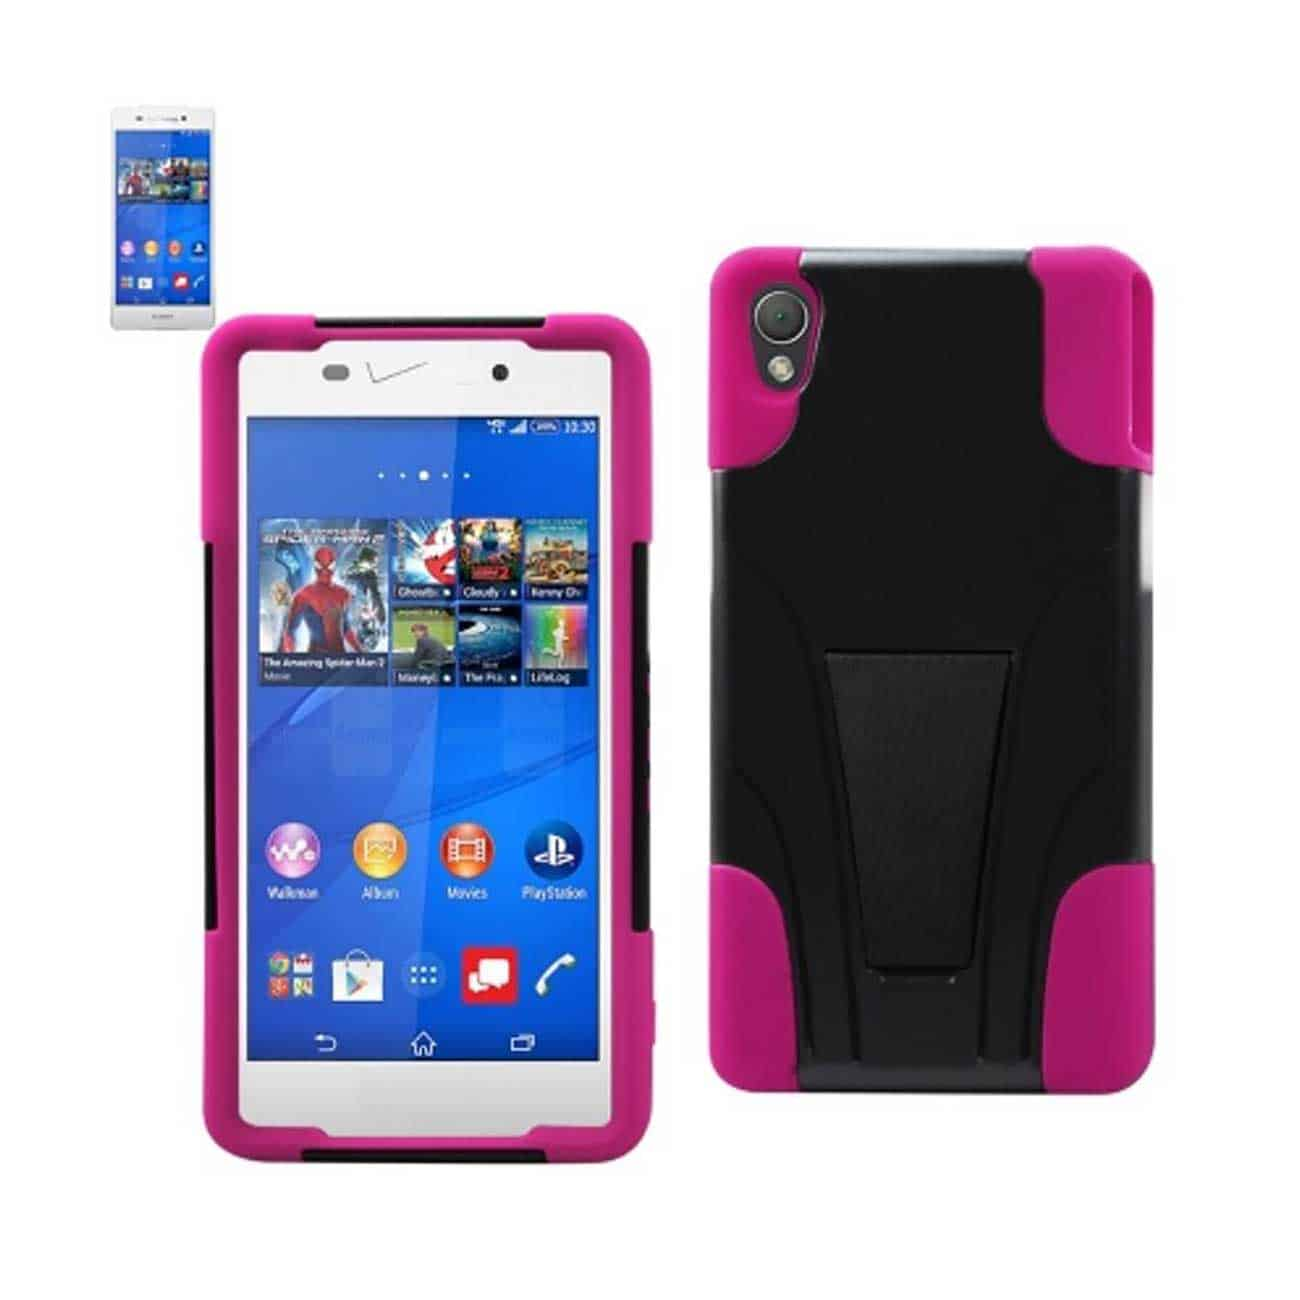 SONY XPERIA Z3V HYBRID HEAVY DUTY CASE WITH KICKSTAND IN HOT PINK BLACK